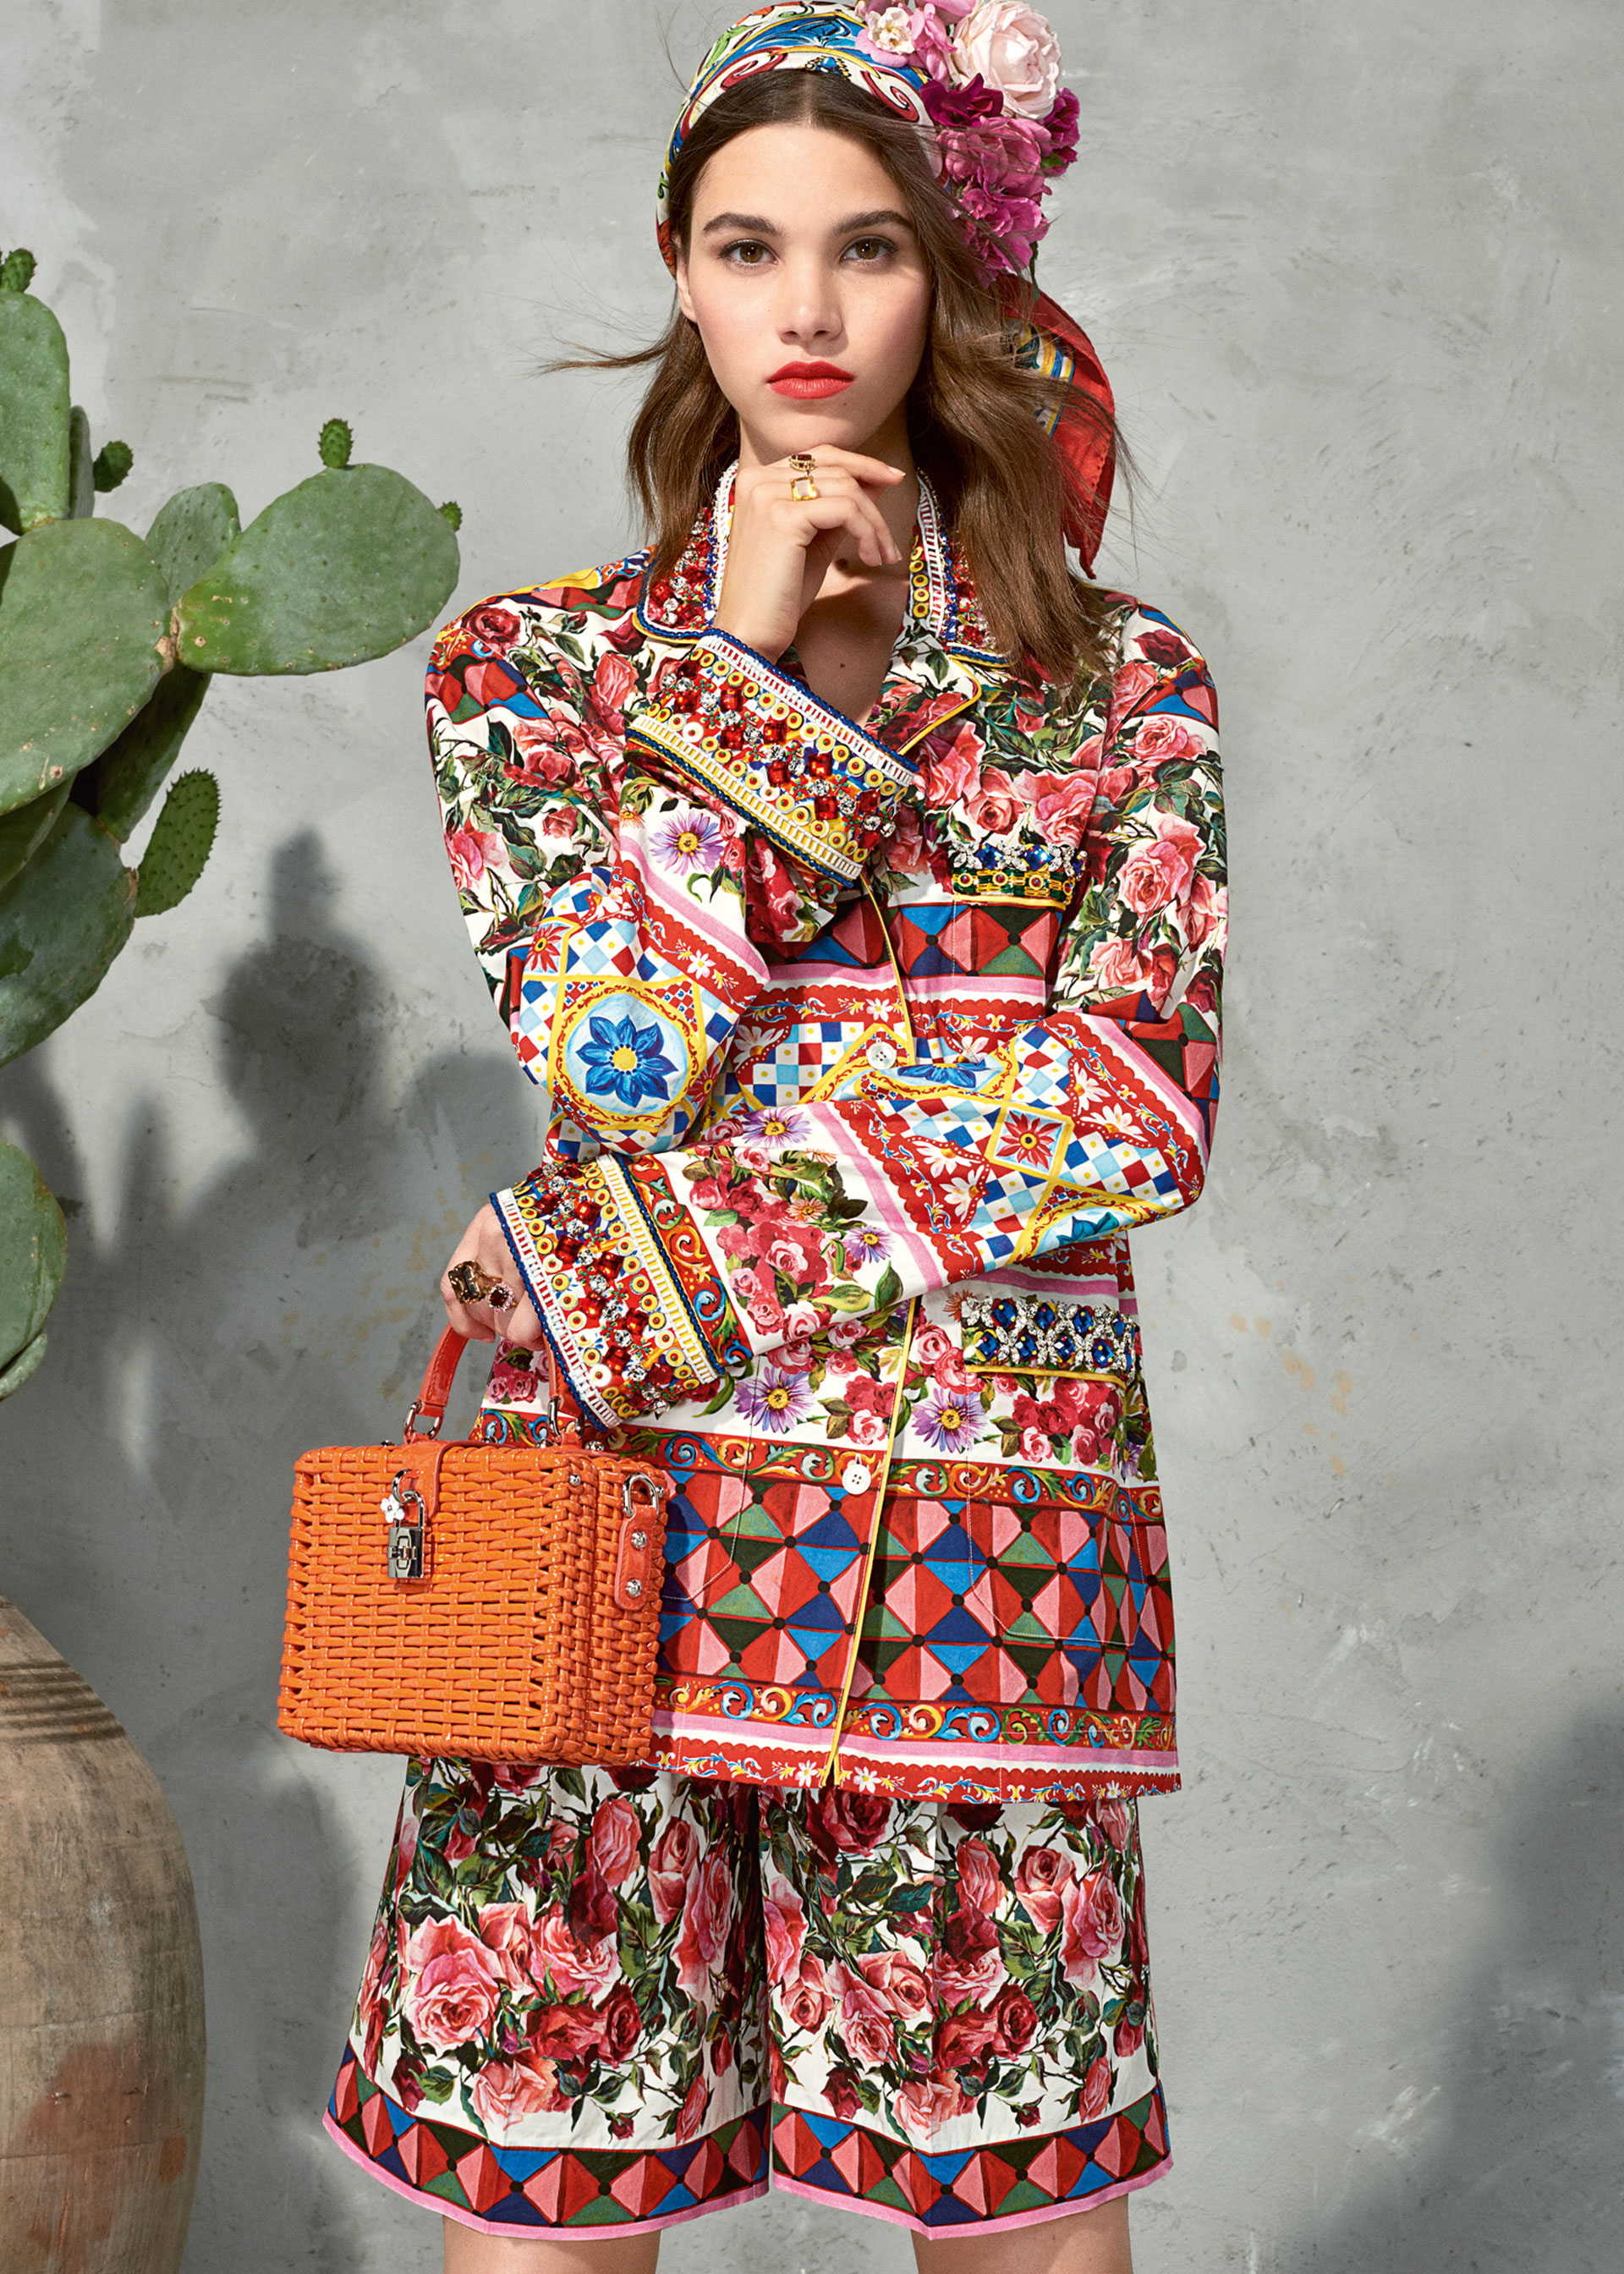 dolce and gabbana summer 2017 woman collection 108 - Dolce & Gabbana/Spring Summer 2017 Collection/ Mambo